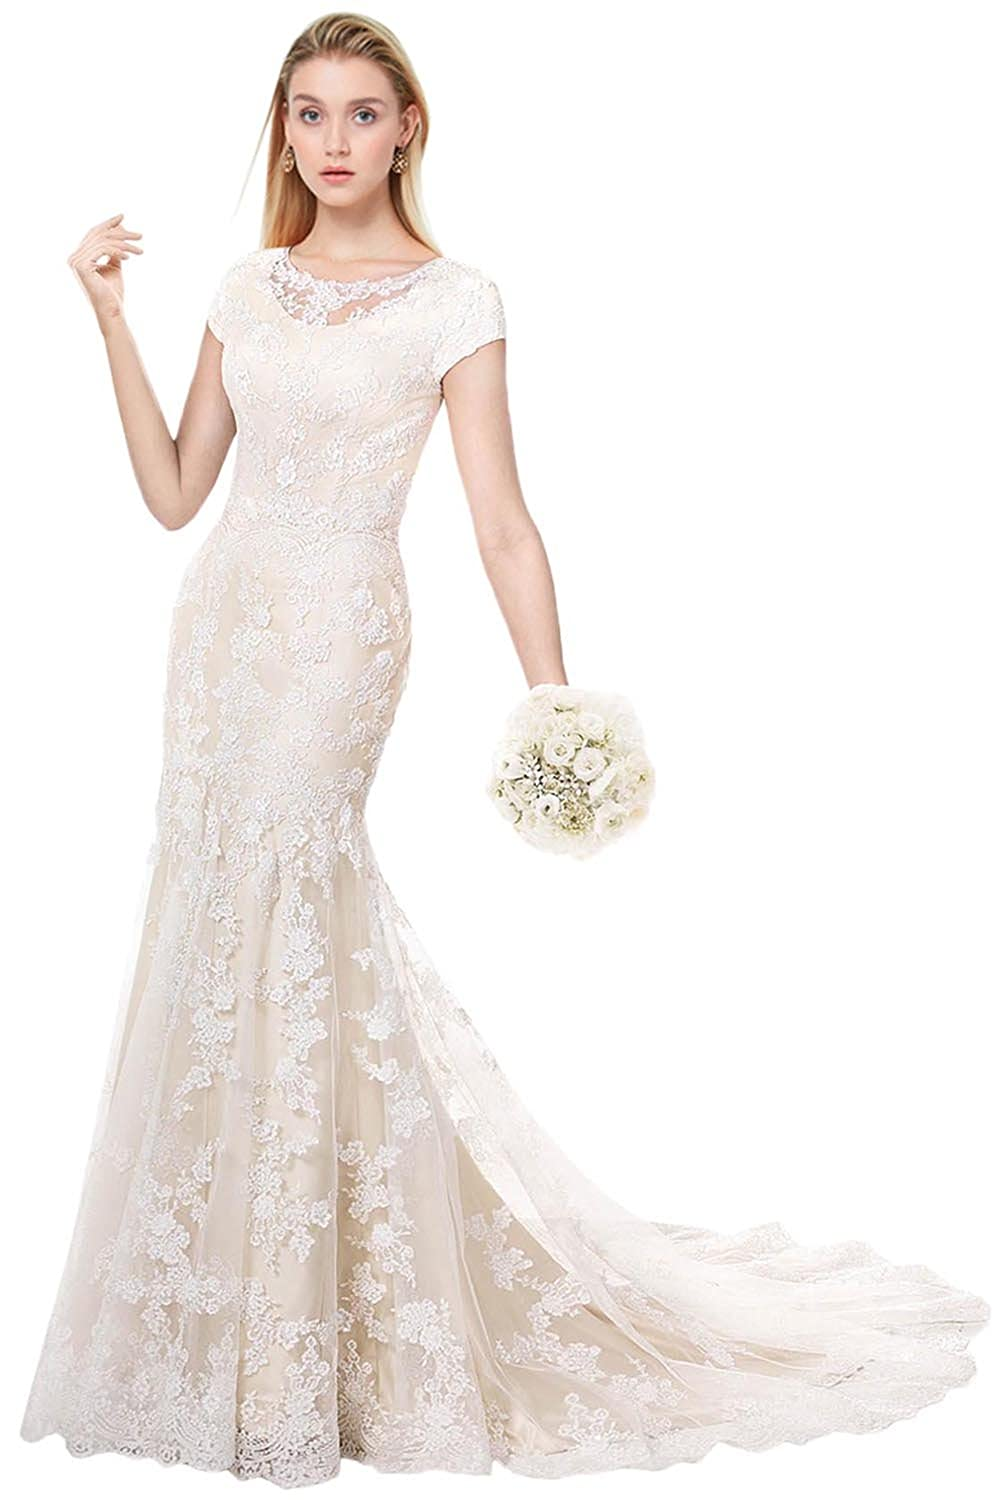 Modest Wedding Dress.Milano Bride Modest Wedding Dress For Bride Short Sleeves Sheath Floral Lace